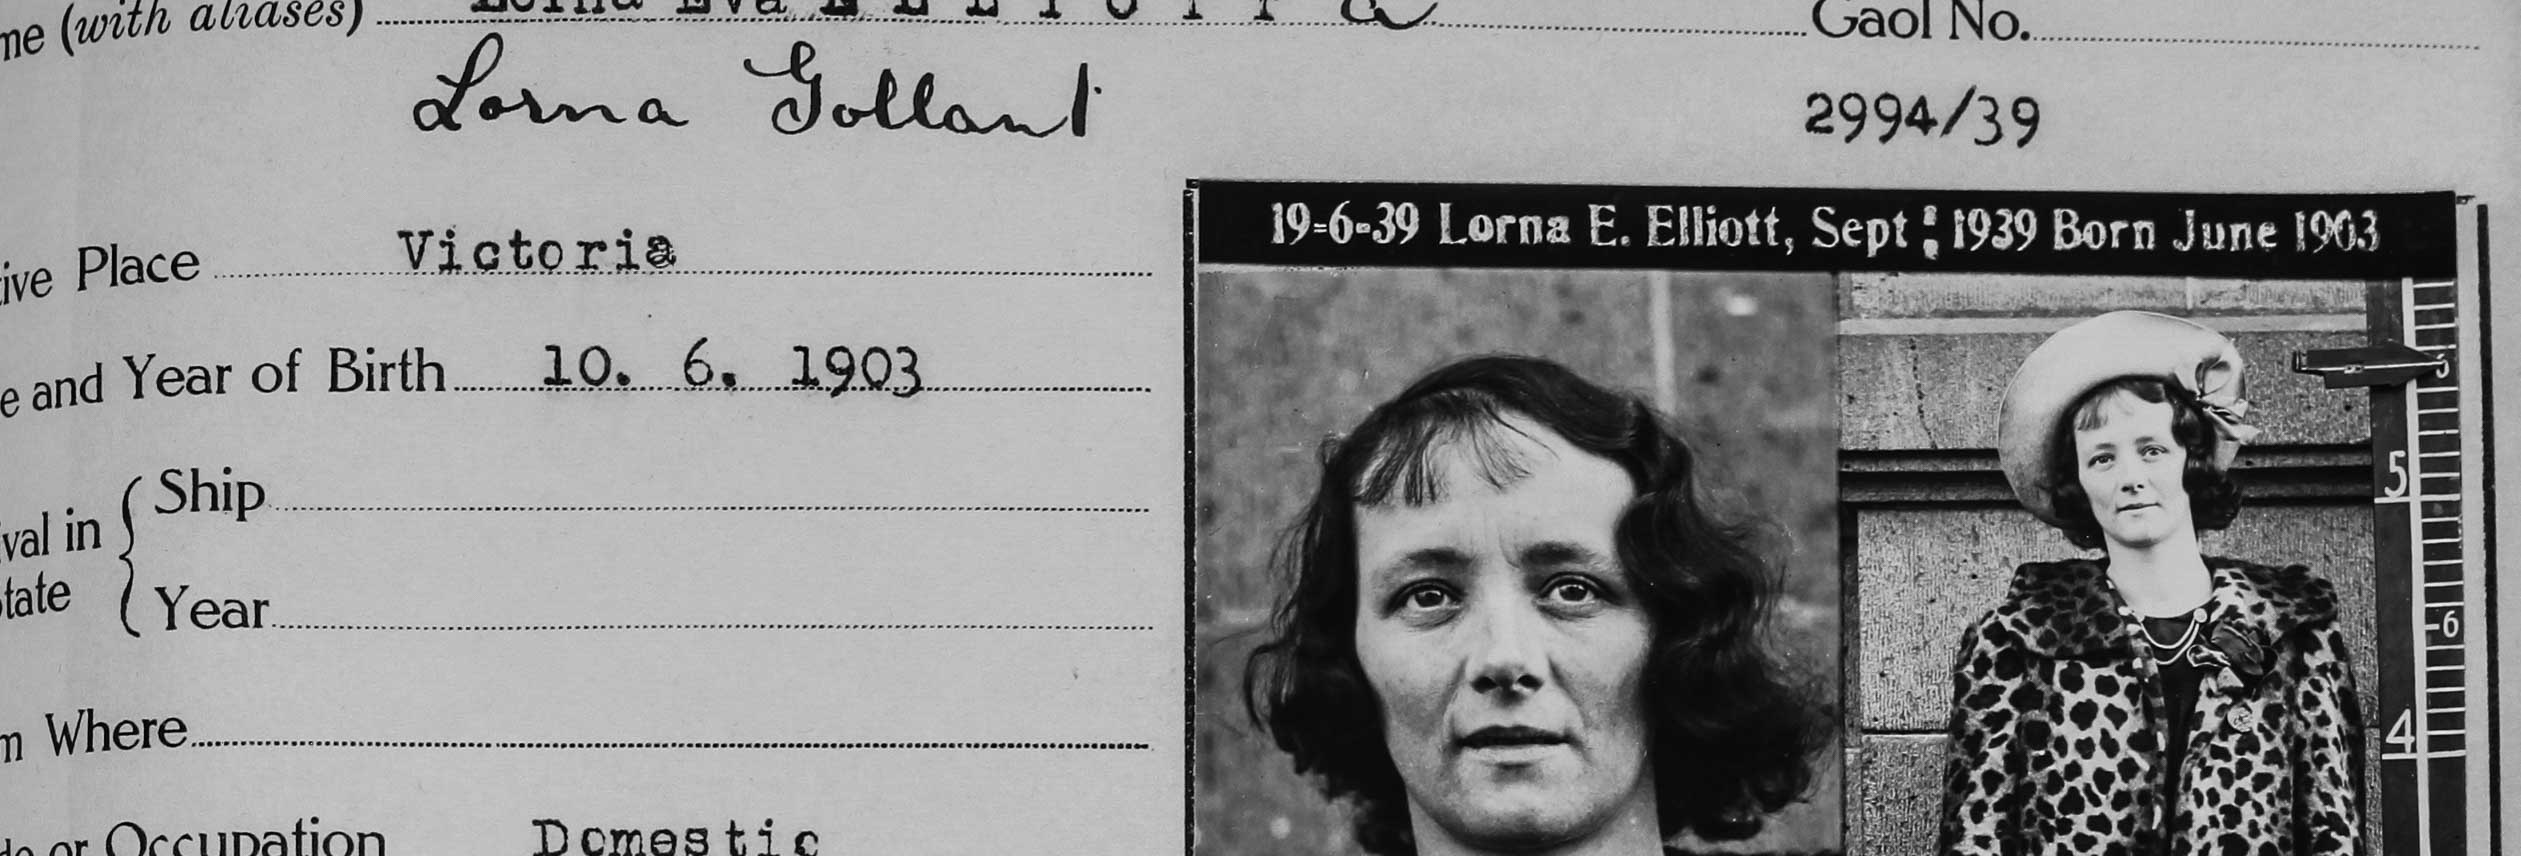 Black and white photo of a woman's criminal record